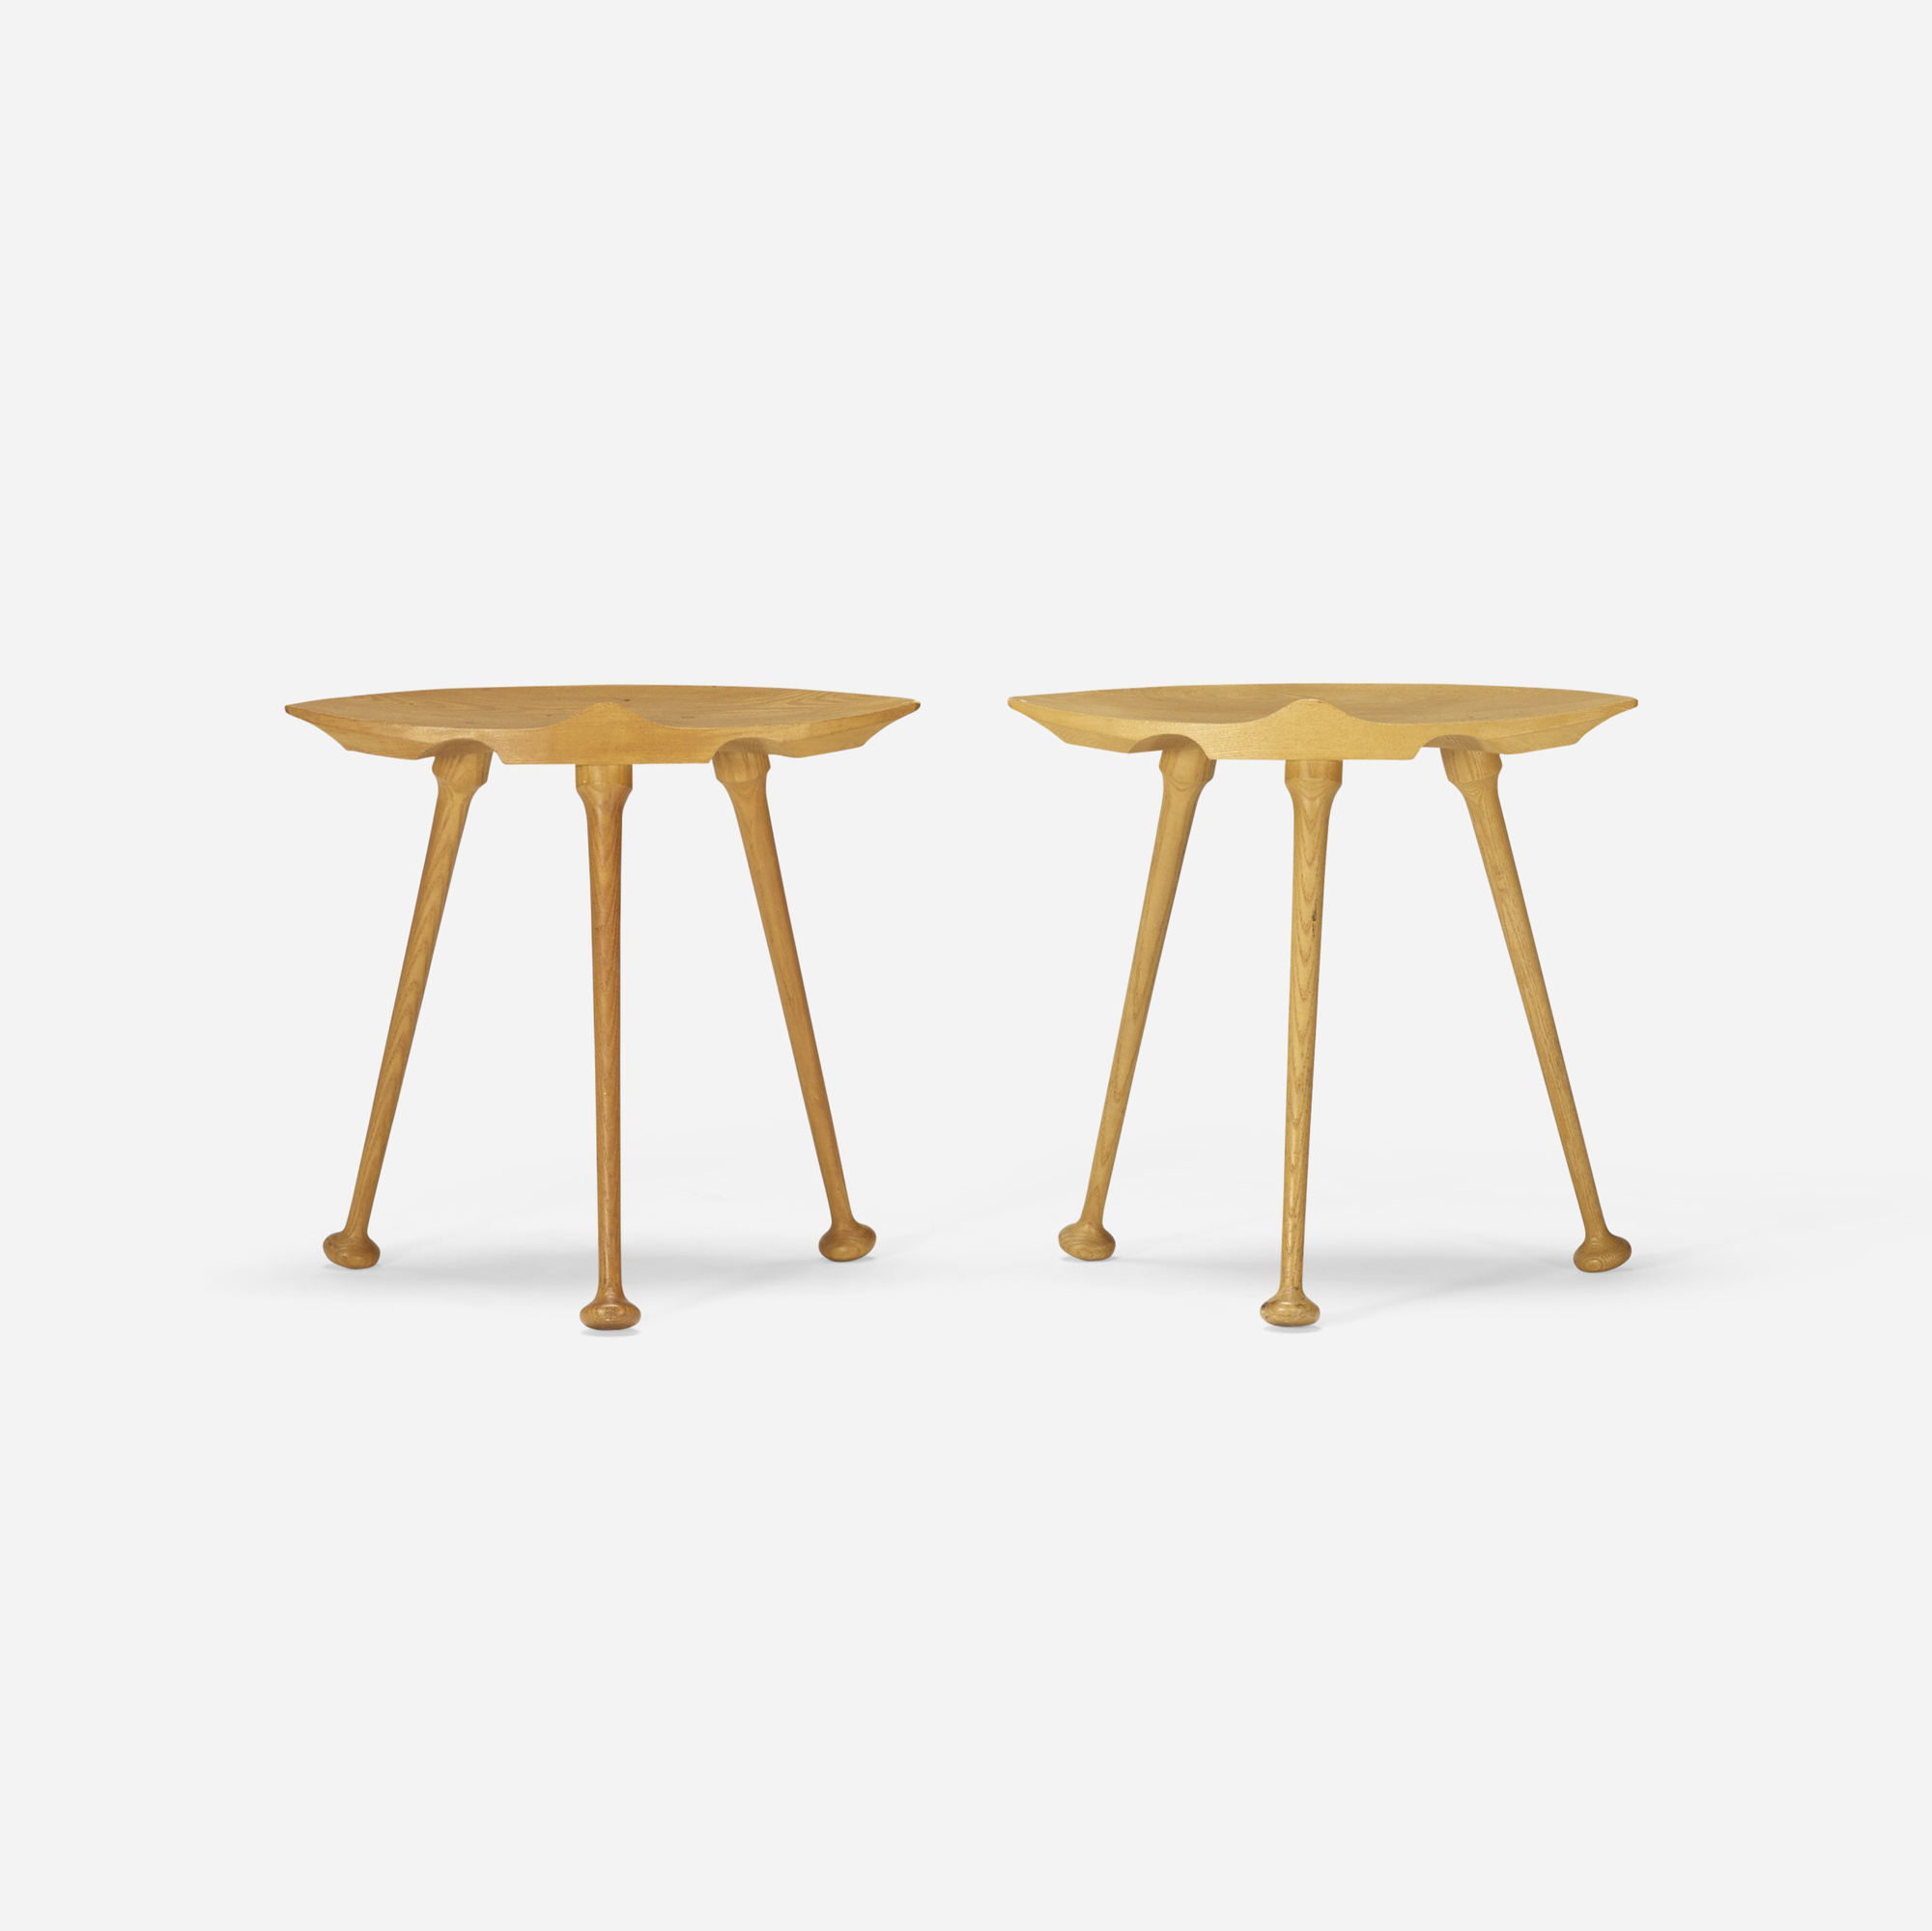 127: American Craft / stools, pair (1 of 2)